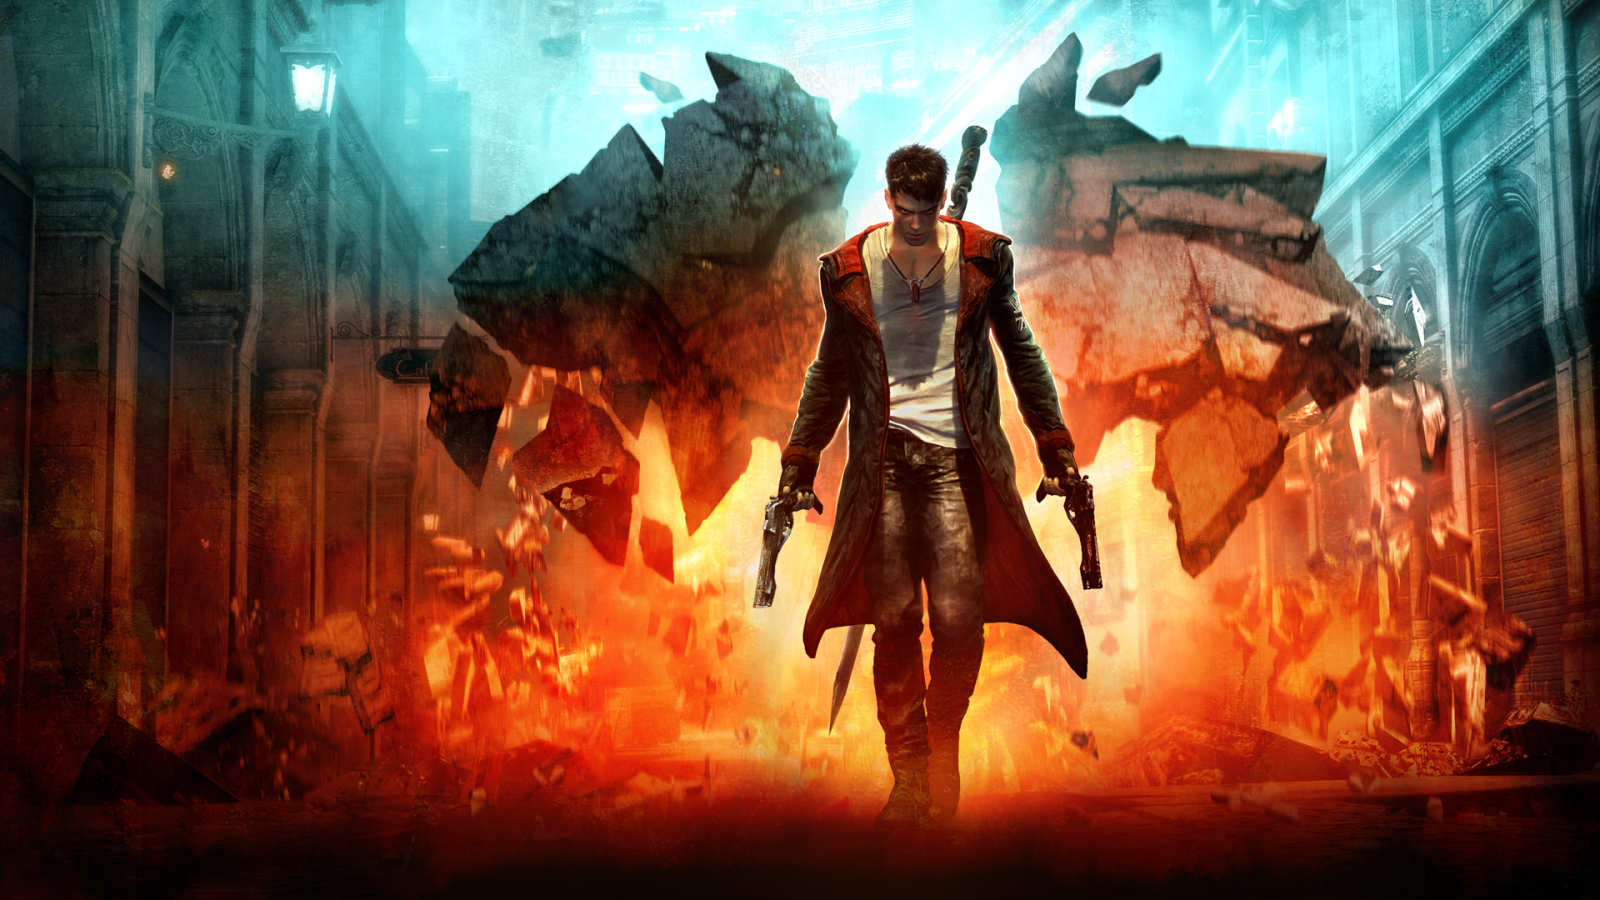 Free Download Devil May Cry 5 Wallpaper Stock Images h0yib2 Yoanu 19x1080 For Your Desktop Mobile Tablet Explore 45 Dmc 5 Wallpaper Devil Wallpaper May Backgrounds Wallpaper Devil Wallpapers For Desktop